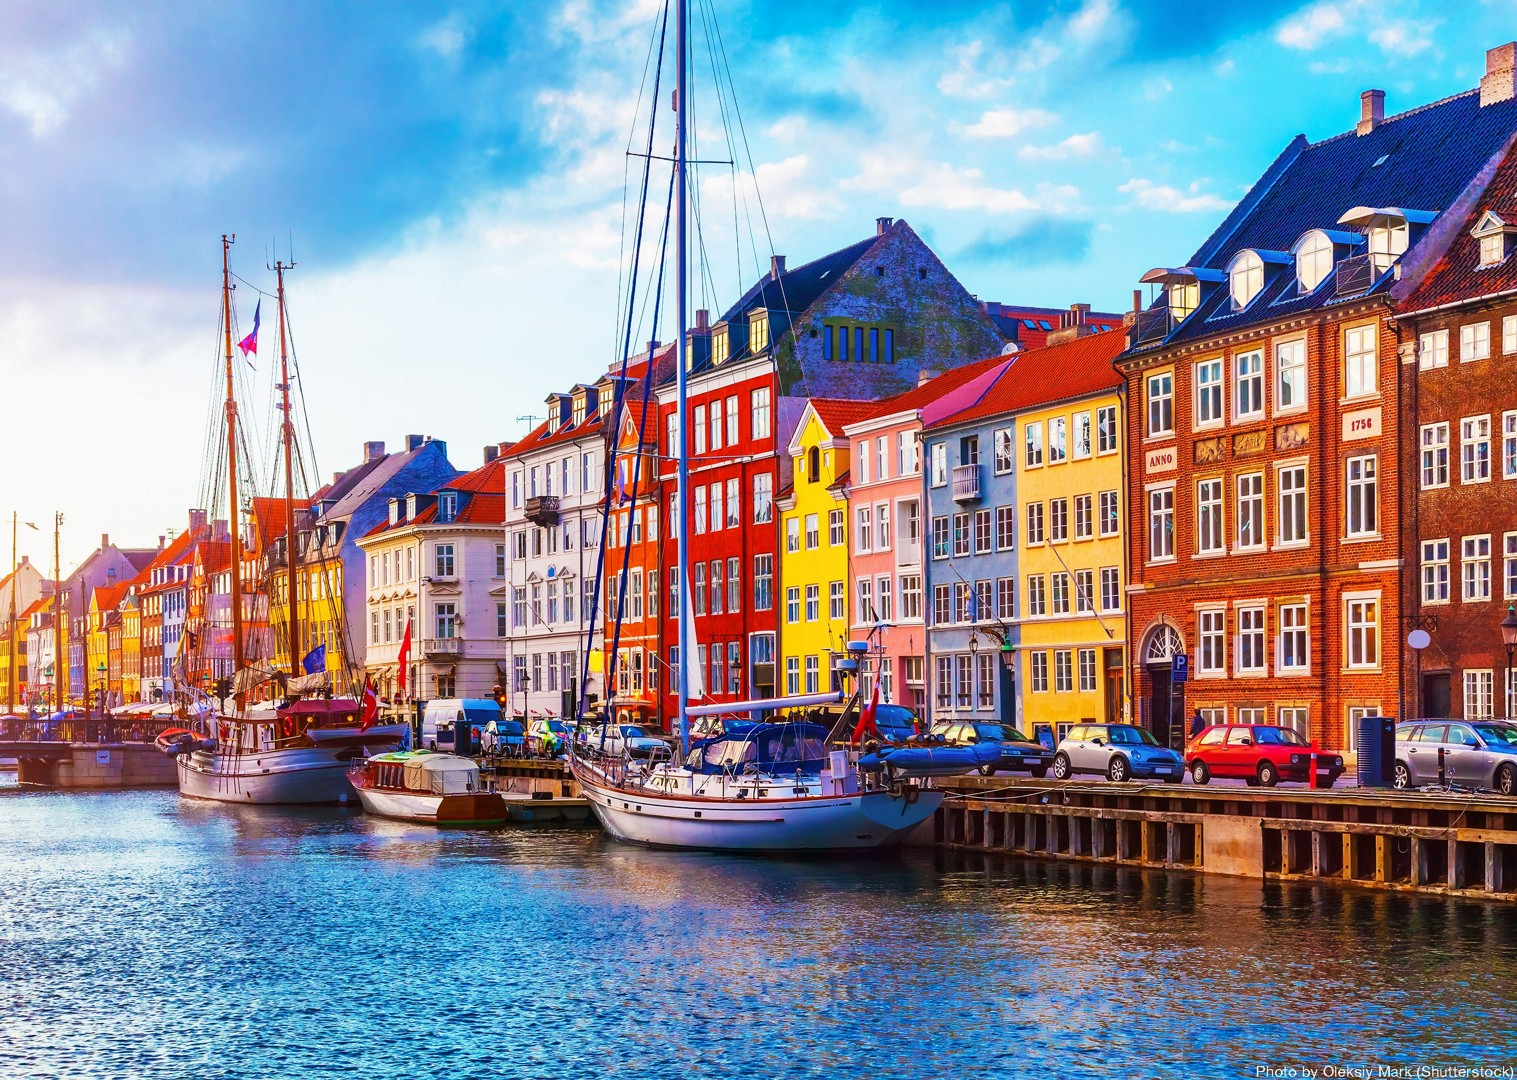 copenhagen-nyhavn-harbour-houses-family-biking-skedaddle.jpg - Denmark - Zooming Through Zealand - Self-Guided Family Cycling Holiday - Family Cycling